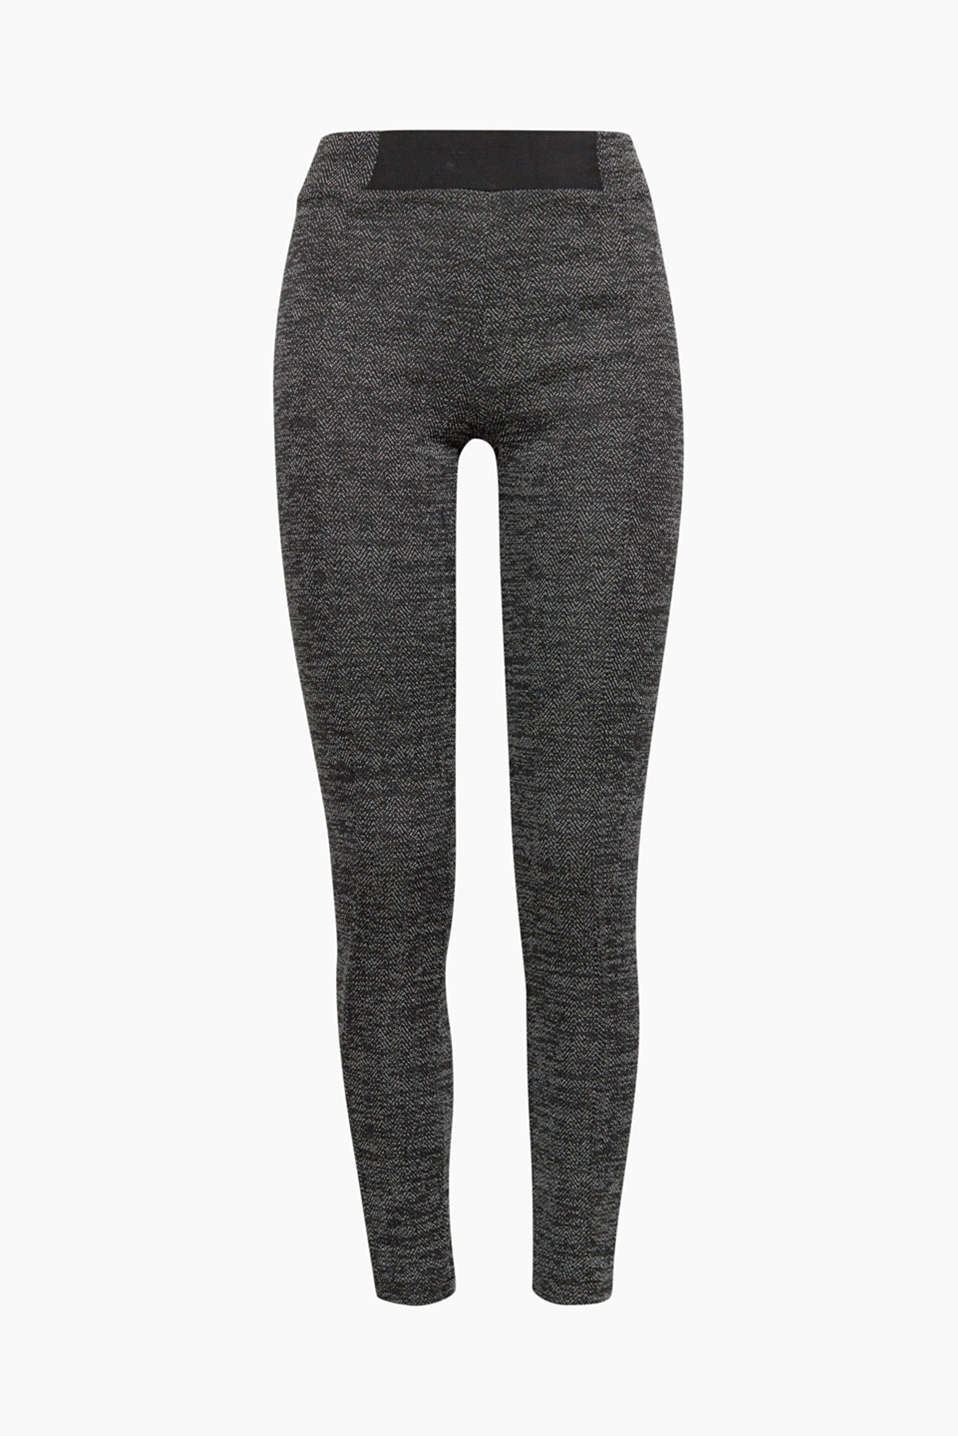 A modern interpretation of the classic herringbone pattern: these leggings offer a new look and exceptional comfort!